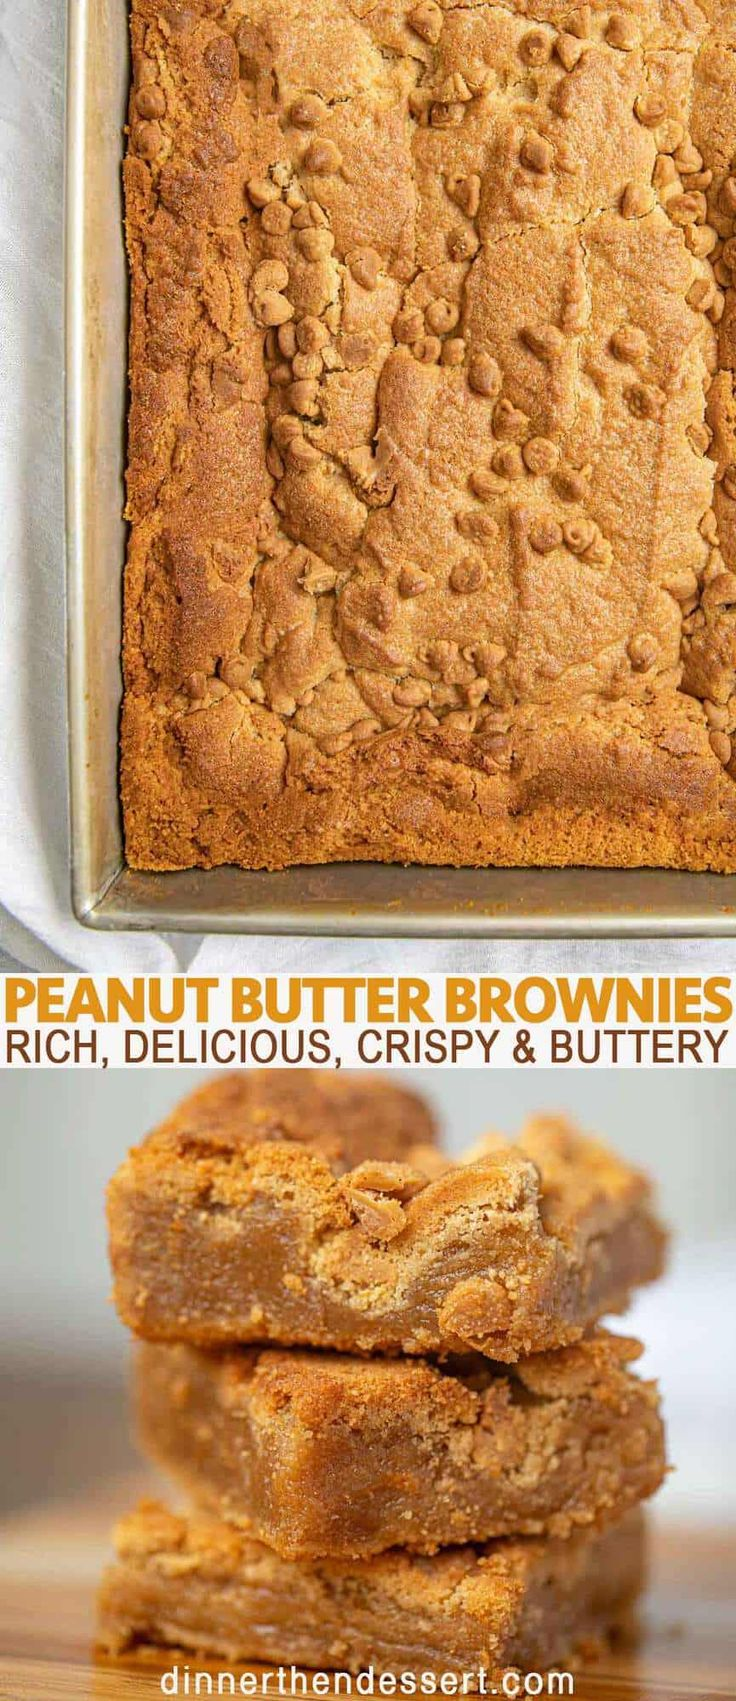 Peanut butter brownies are rich, delicious, crispy…